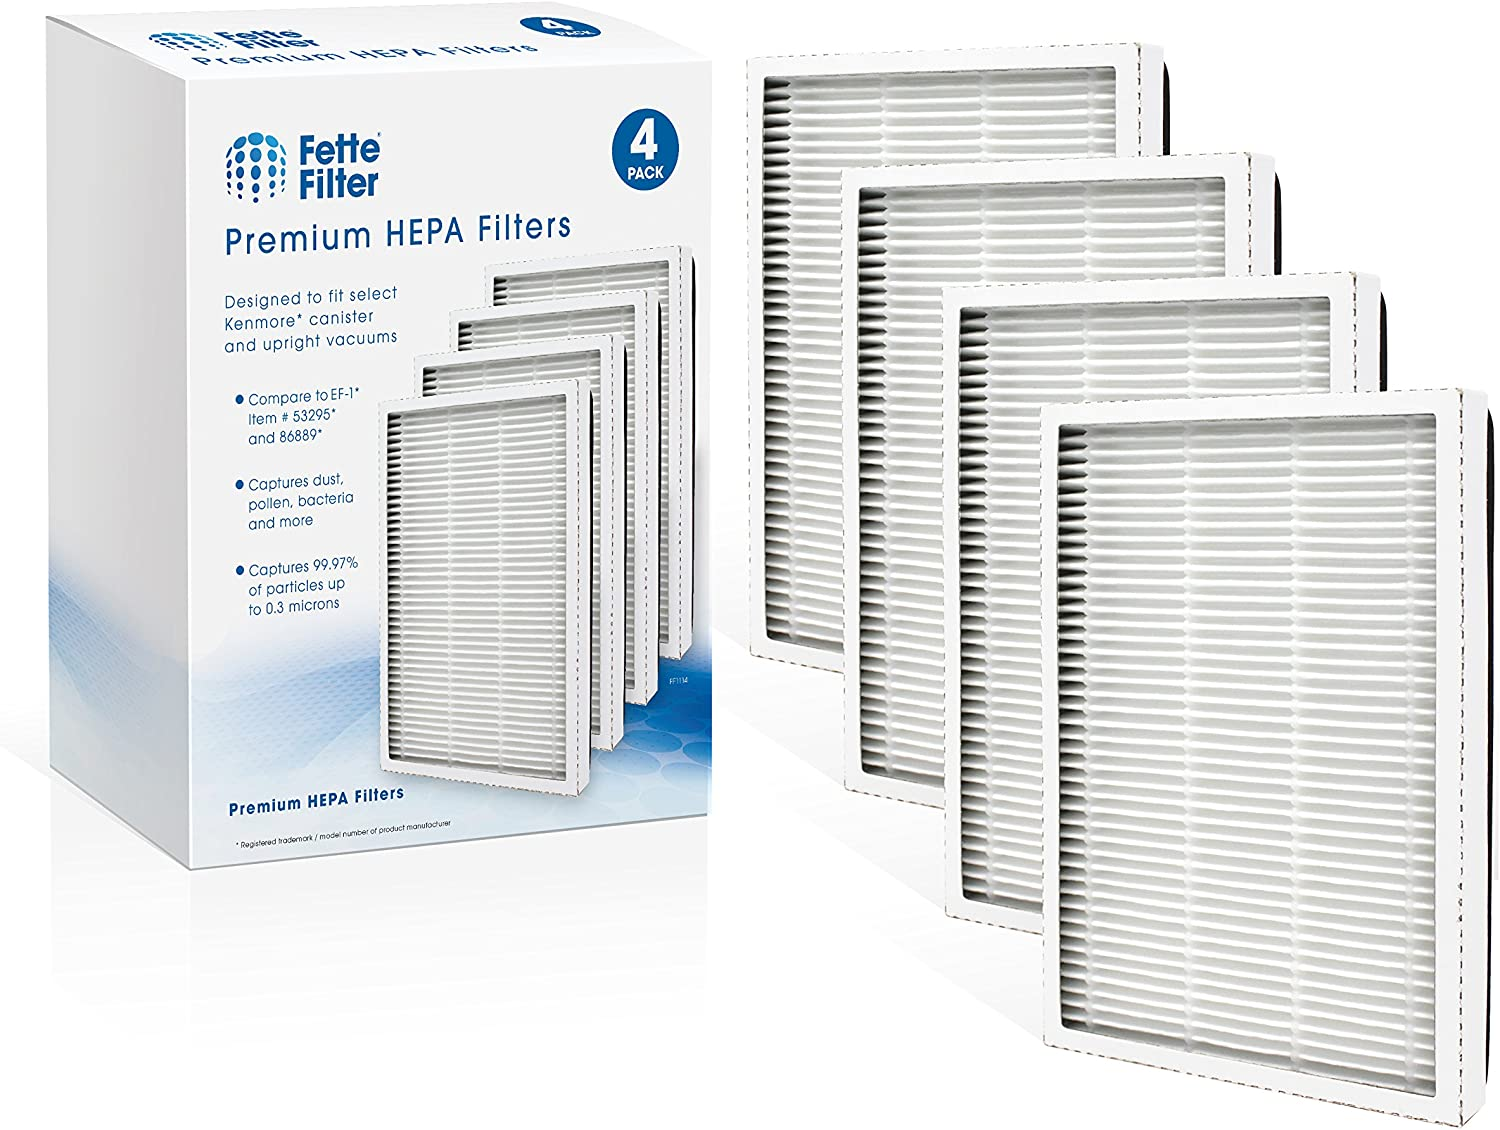 Fette Filter - Exhaust HEPA Vacuum Filter Compatible with EF-1 Sears Kenmore, (Compares to 86889) and Also Compatible with Panasonic (Compares to MC-V199H) (Pack of 4)